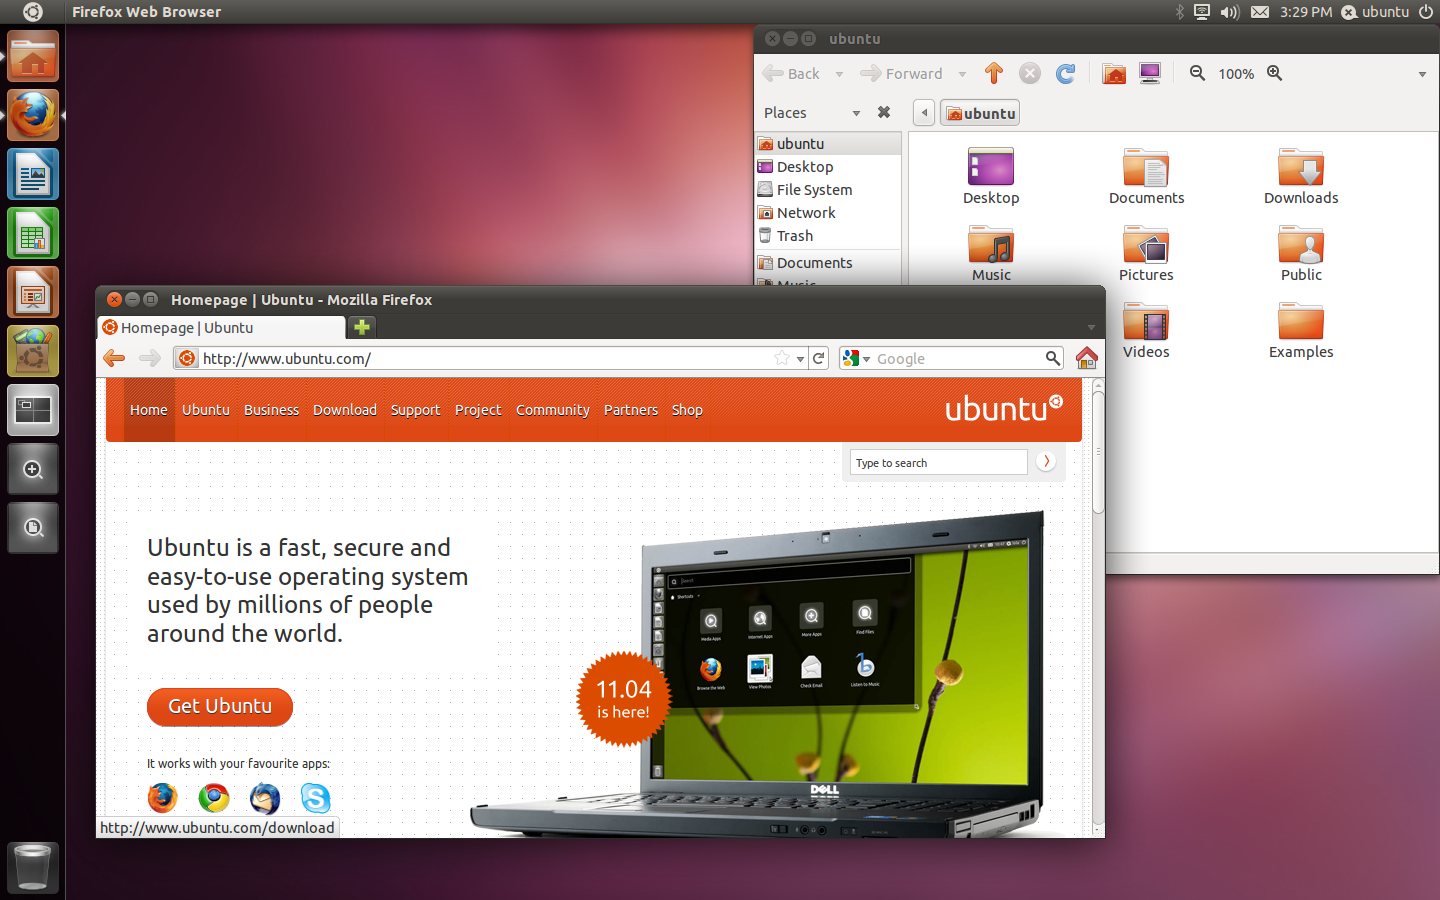 ubuntu - Free Linux operating system with great support for USB